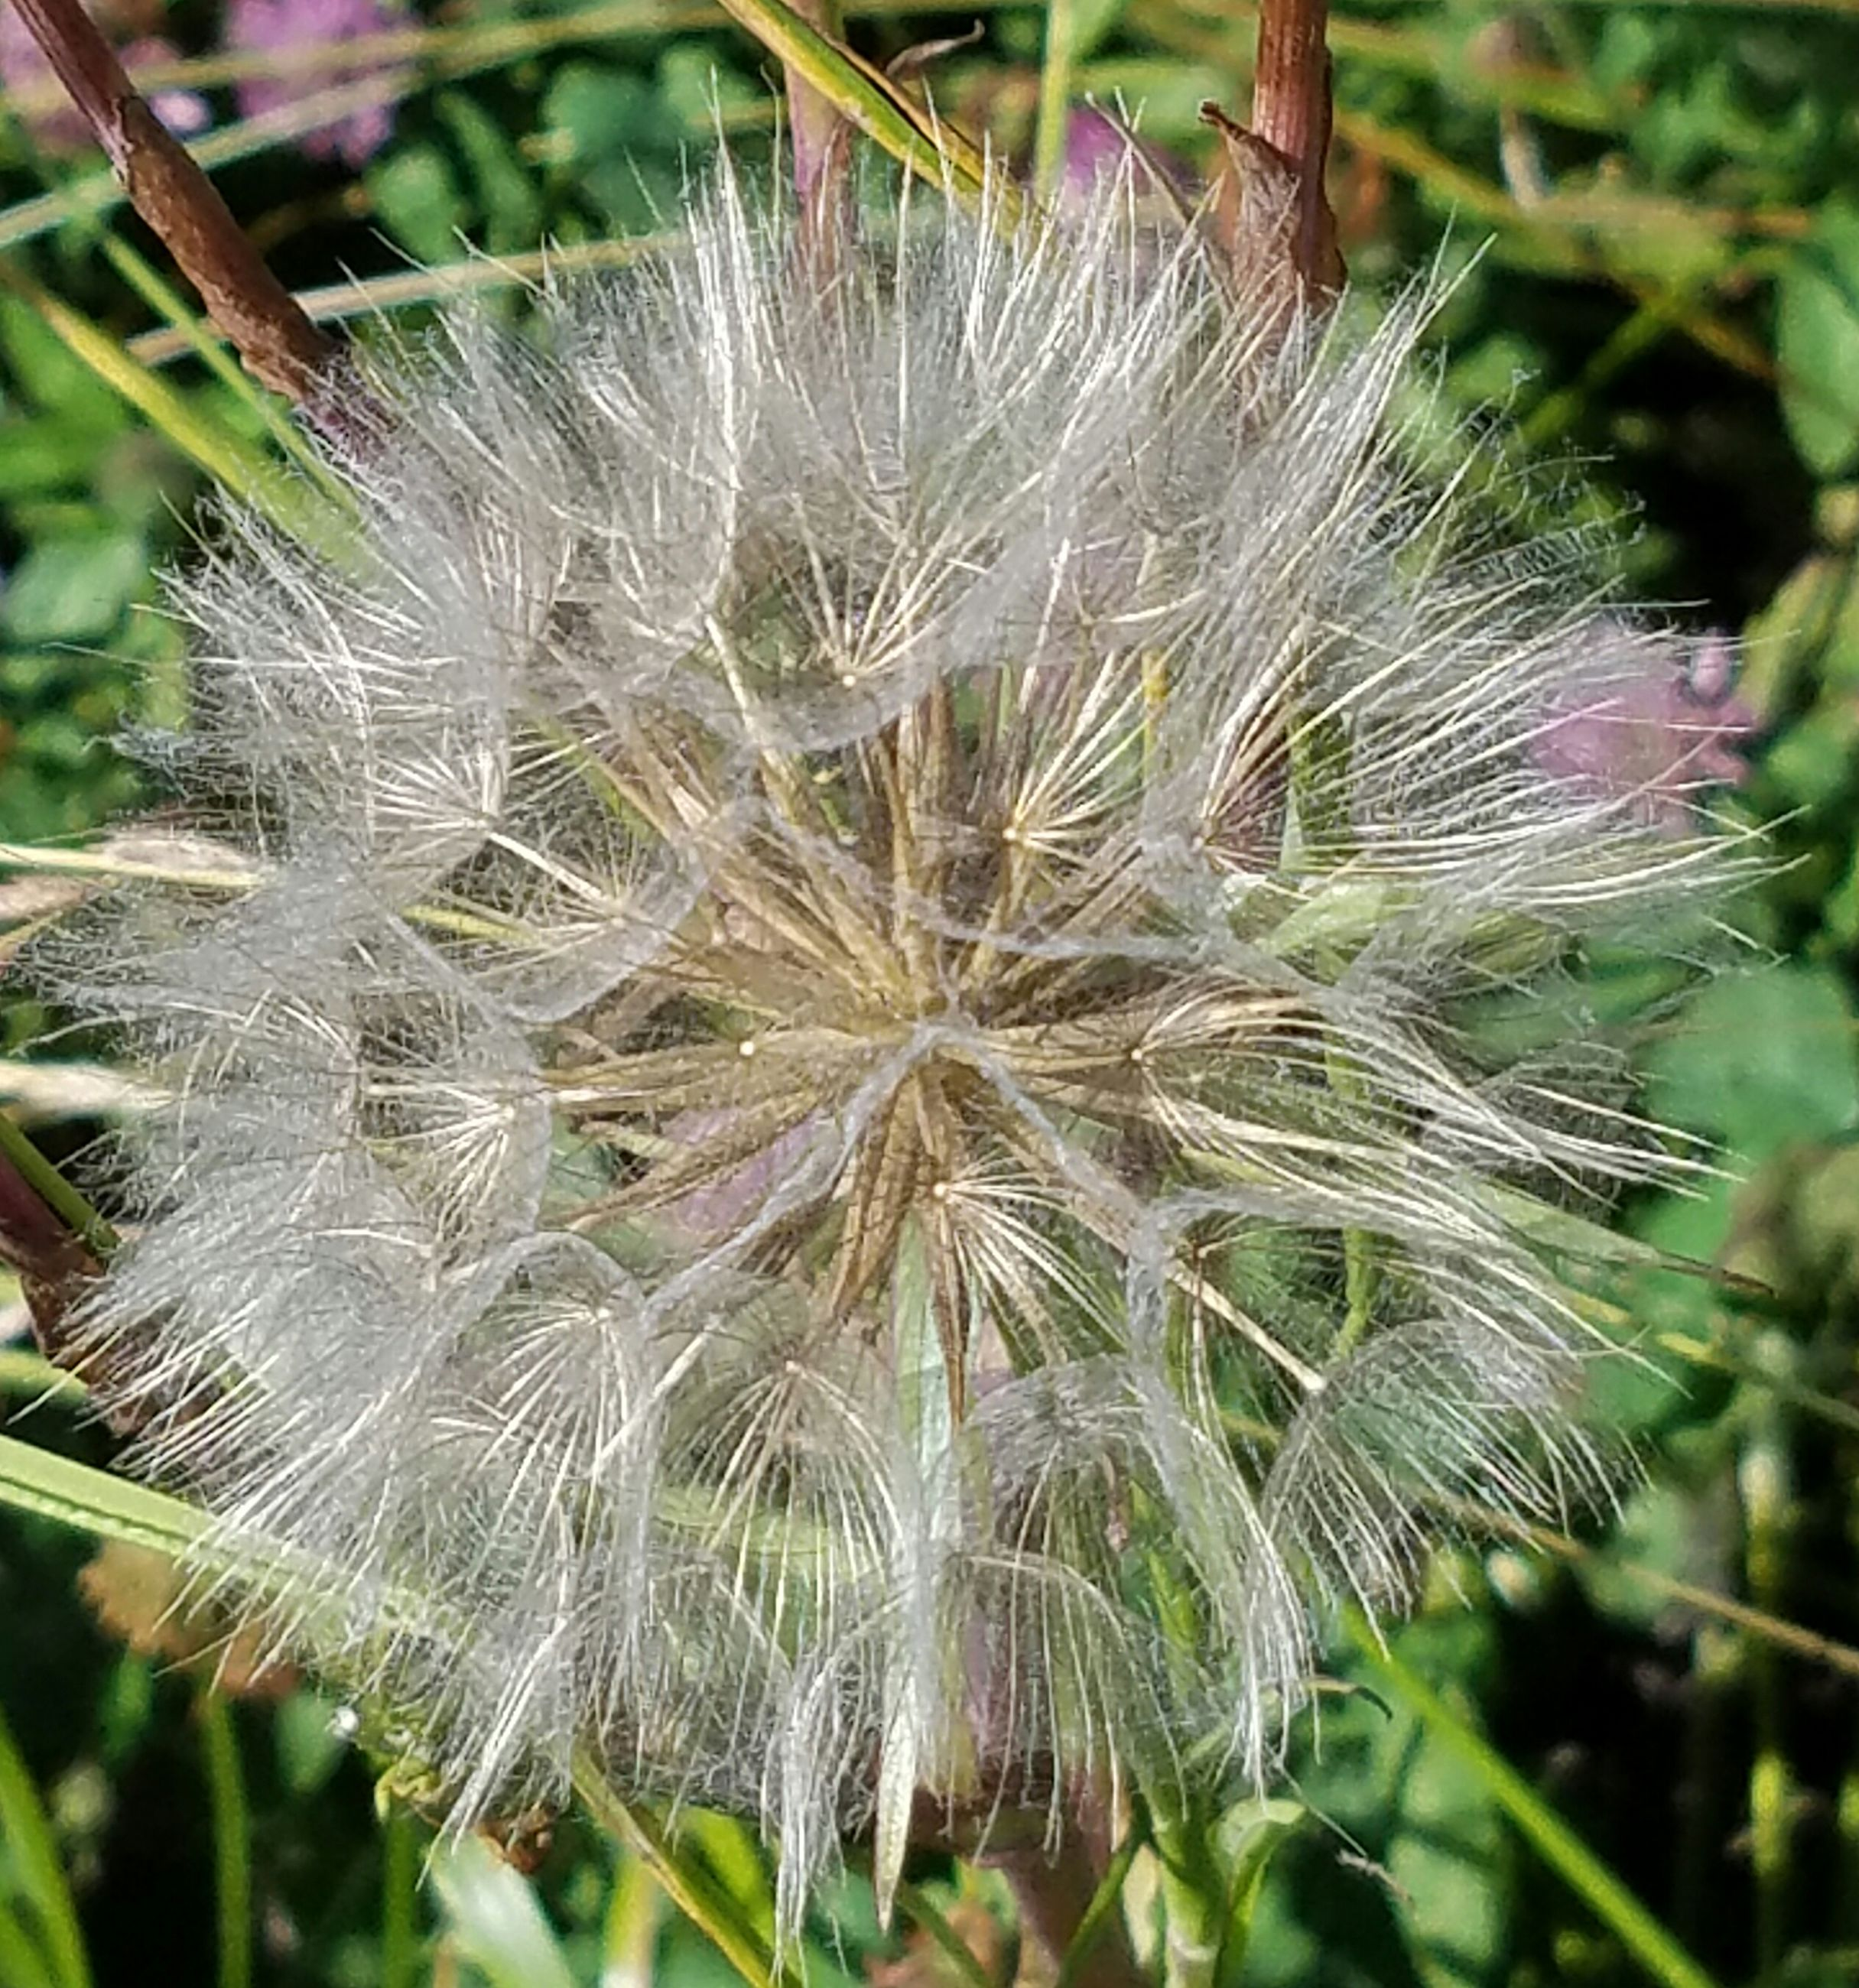 flower, fragility, close-up, growth, freshness, focus on foreground, dandelion, beauty in nature, nature, flower head, plant, day, dandelion seed, outdoors, softness, selective focus, in bloom, blooming, natural pattern, no people, botany, uncultivated, stem, petal, blossom, tranquility